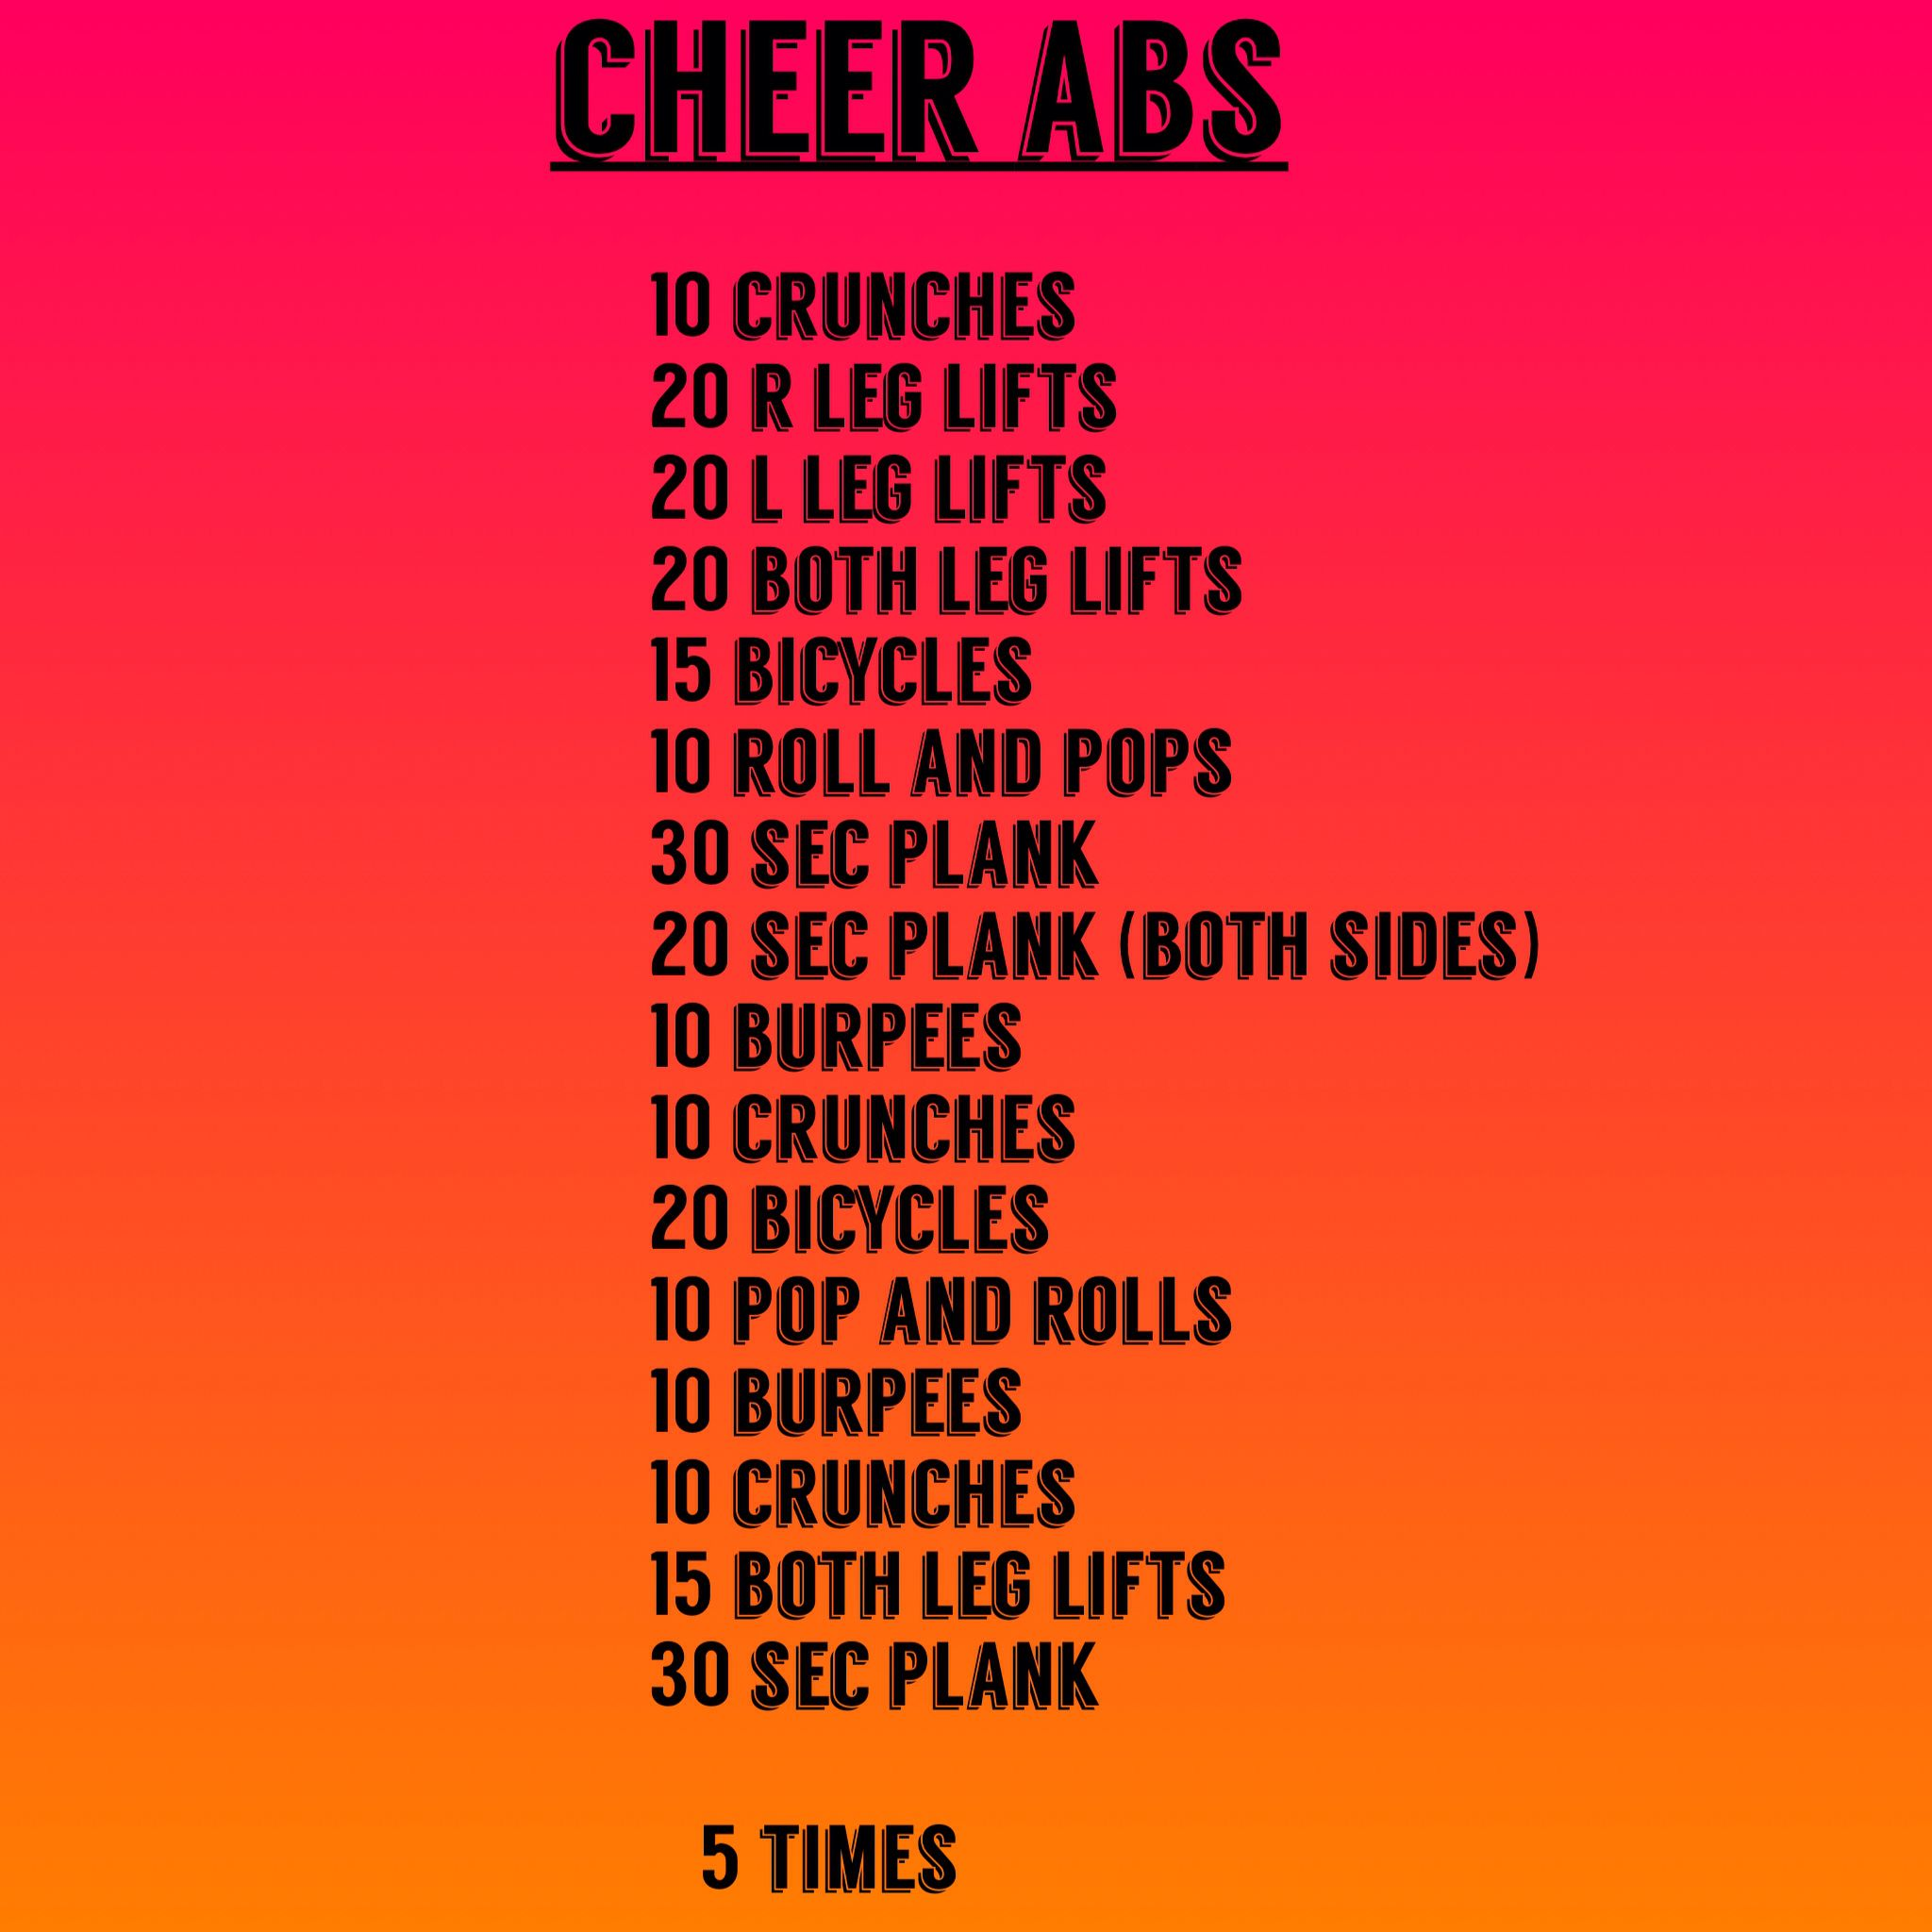 Cheer Abs Workout